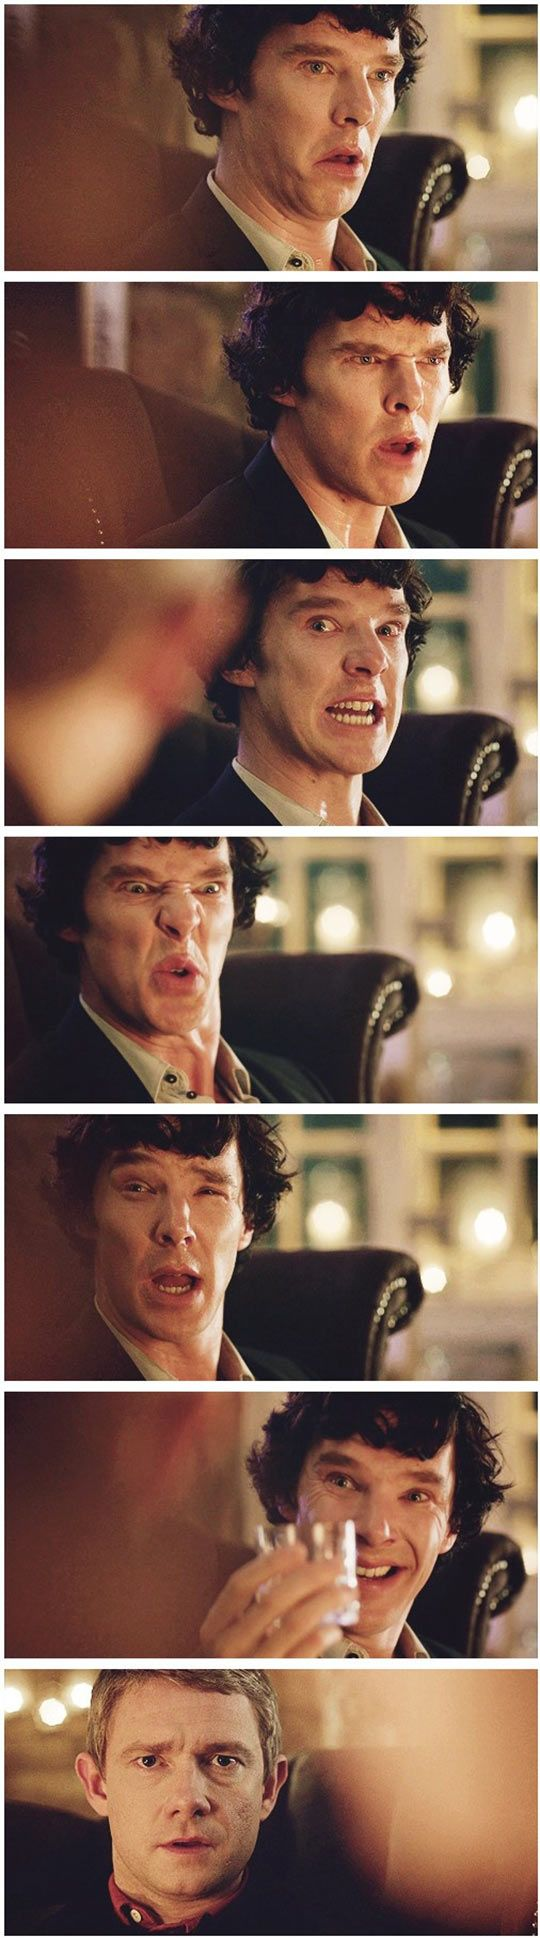 [Sherlock]  This whole sequence, I couldn't stop laughing.  Oh, these two. :)